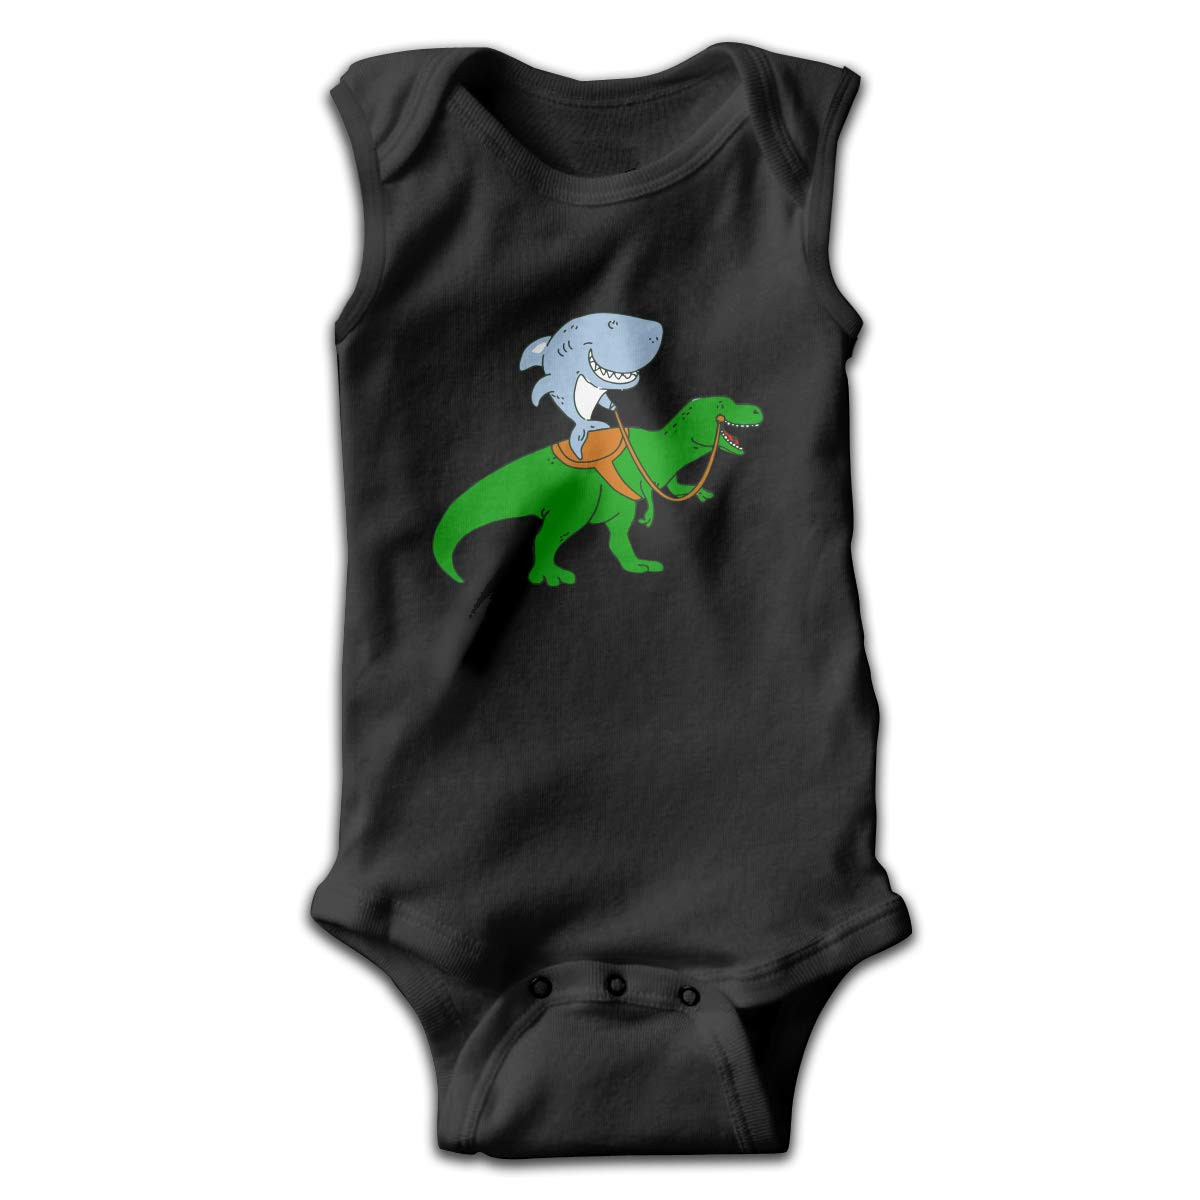 Great White Shark Riding A T Rex Infant Baby Boys Girls Crawling Suit Sleeveless Romper Bodysuit Rompers Jumpsuit